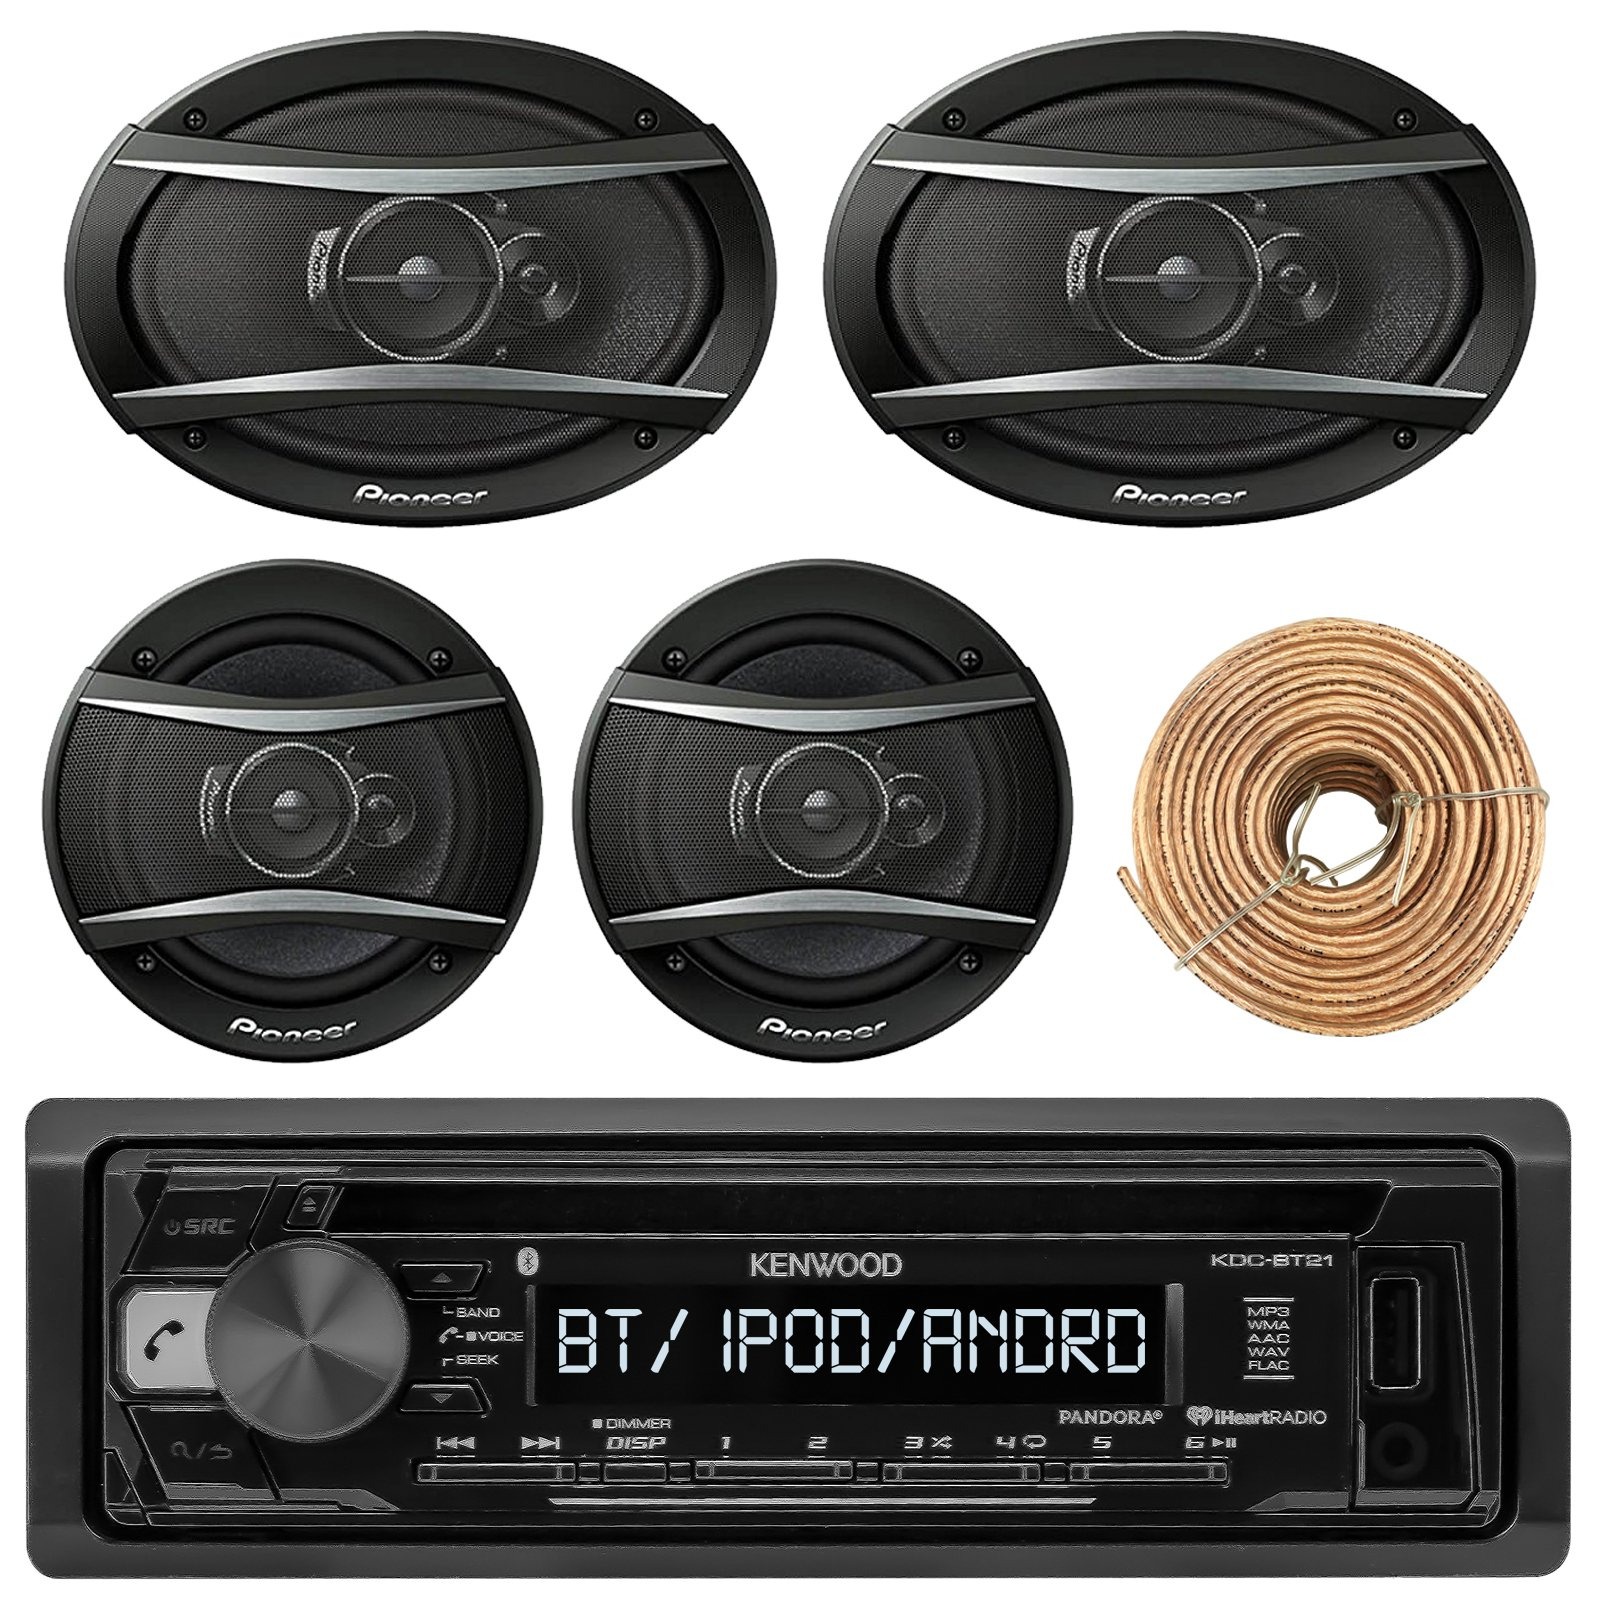 Kenewood KDCBT21 Car Bluetooth Radio USB AUX CD Player Receiver - Bundle With 2x TSA1676R 6.5'' 3-Way Car Audio Speakers - 2x 6.5''-6.75'' 4-Way Stereo Speaker + Enrock 50Ft 18 Gauge Speaker Wire